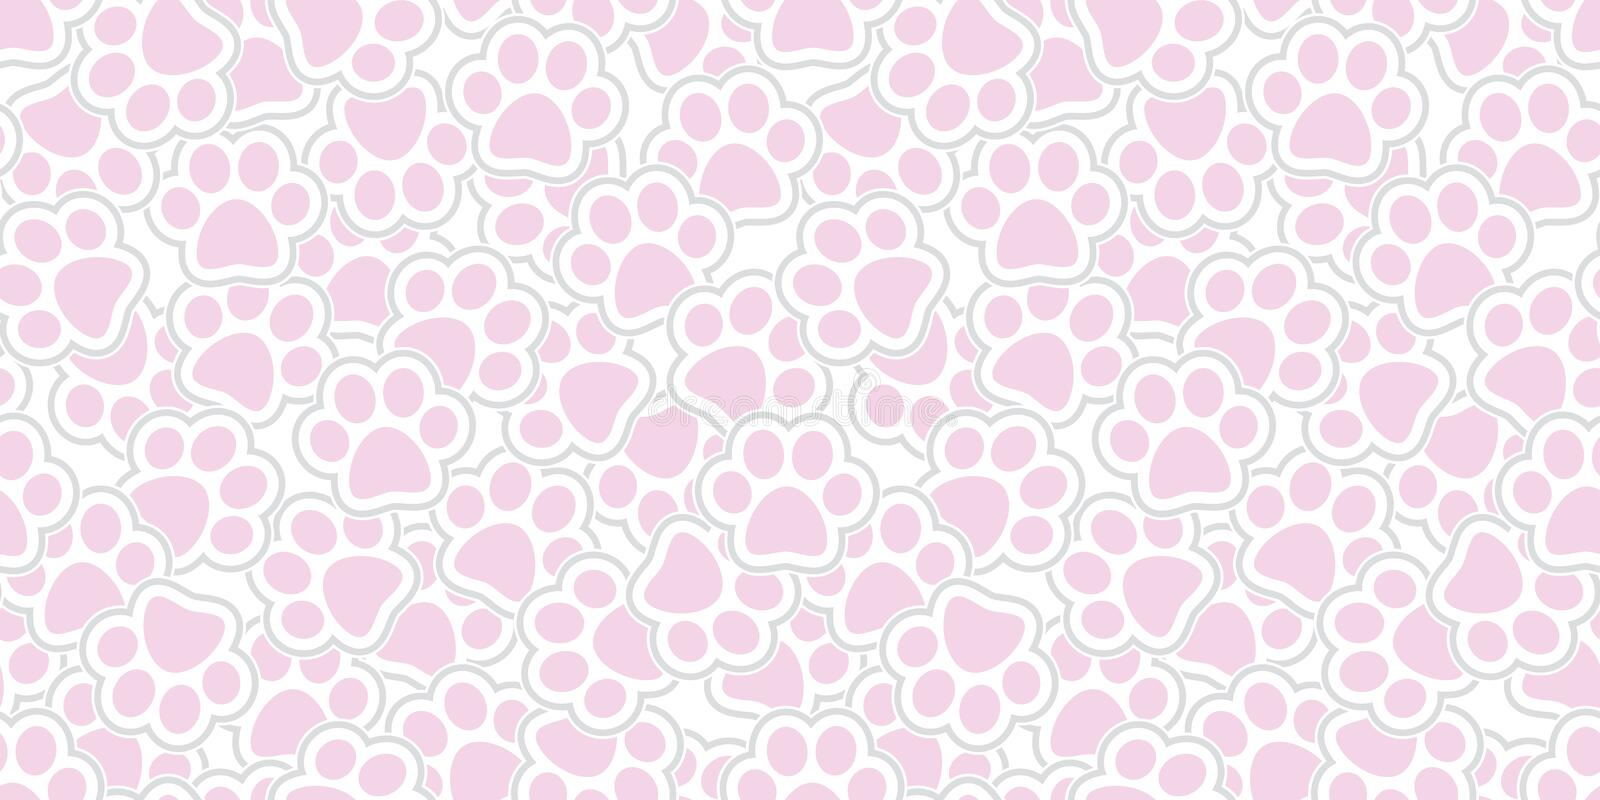 Rose de fond de répétition de papier peint d'isolement par copie de pied de patte de chat de vecteur de Paw Seamless Pattern de c illustration de vecteur